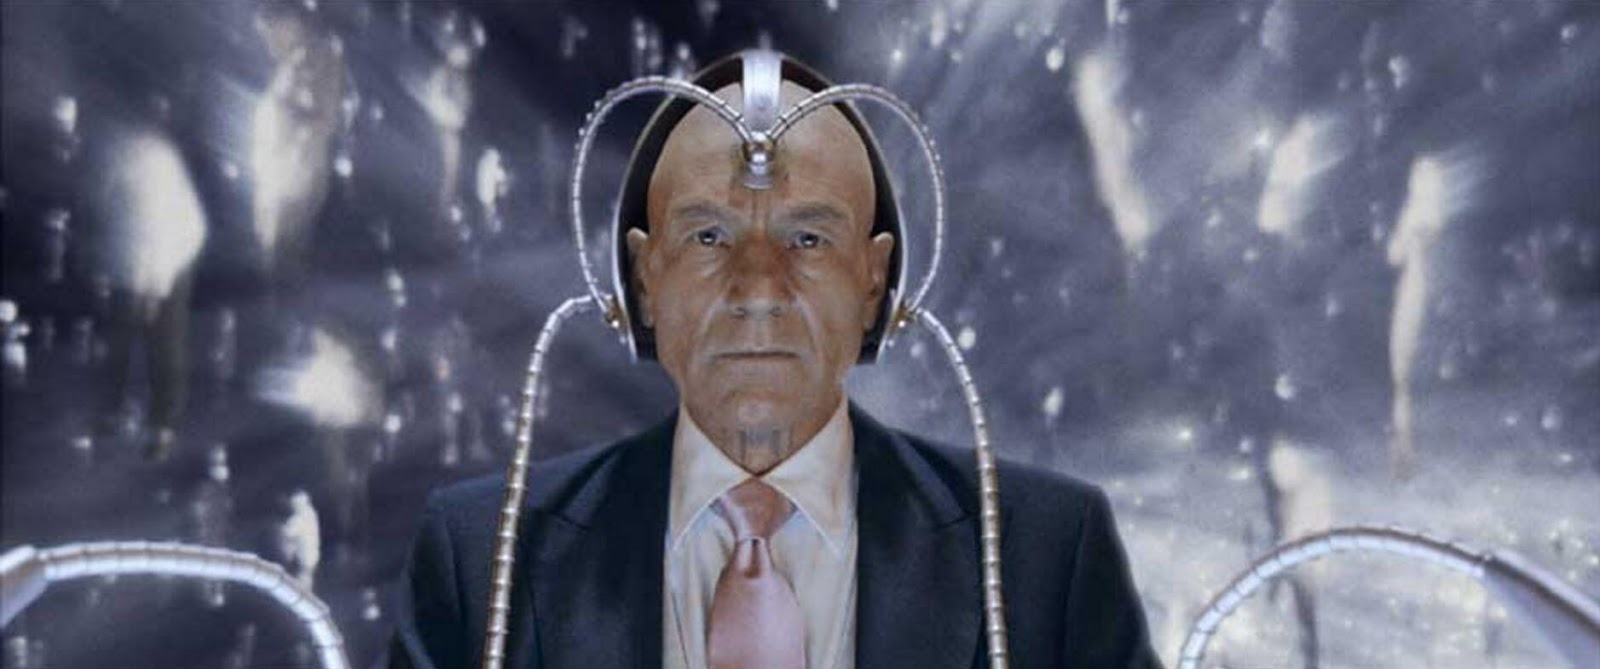 Professor X in Cerebro